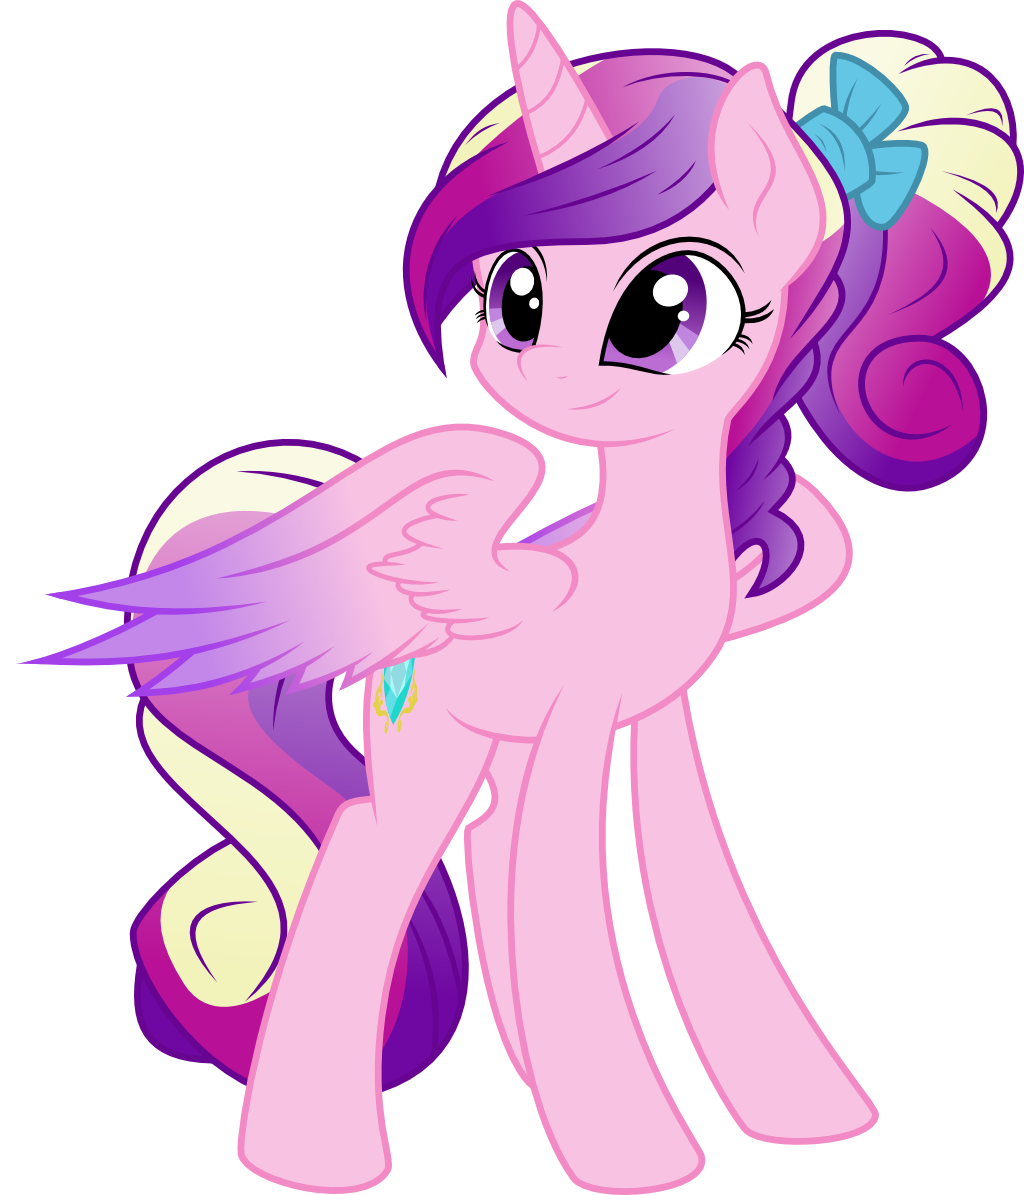 mlp hairstyles - google search | cadance | mlp my little